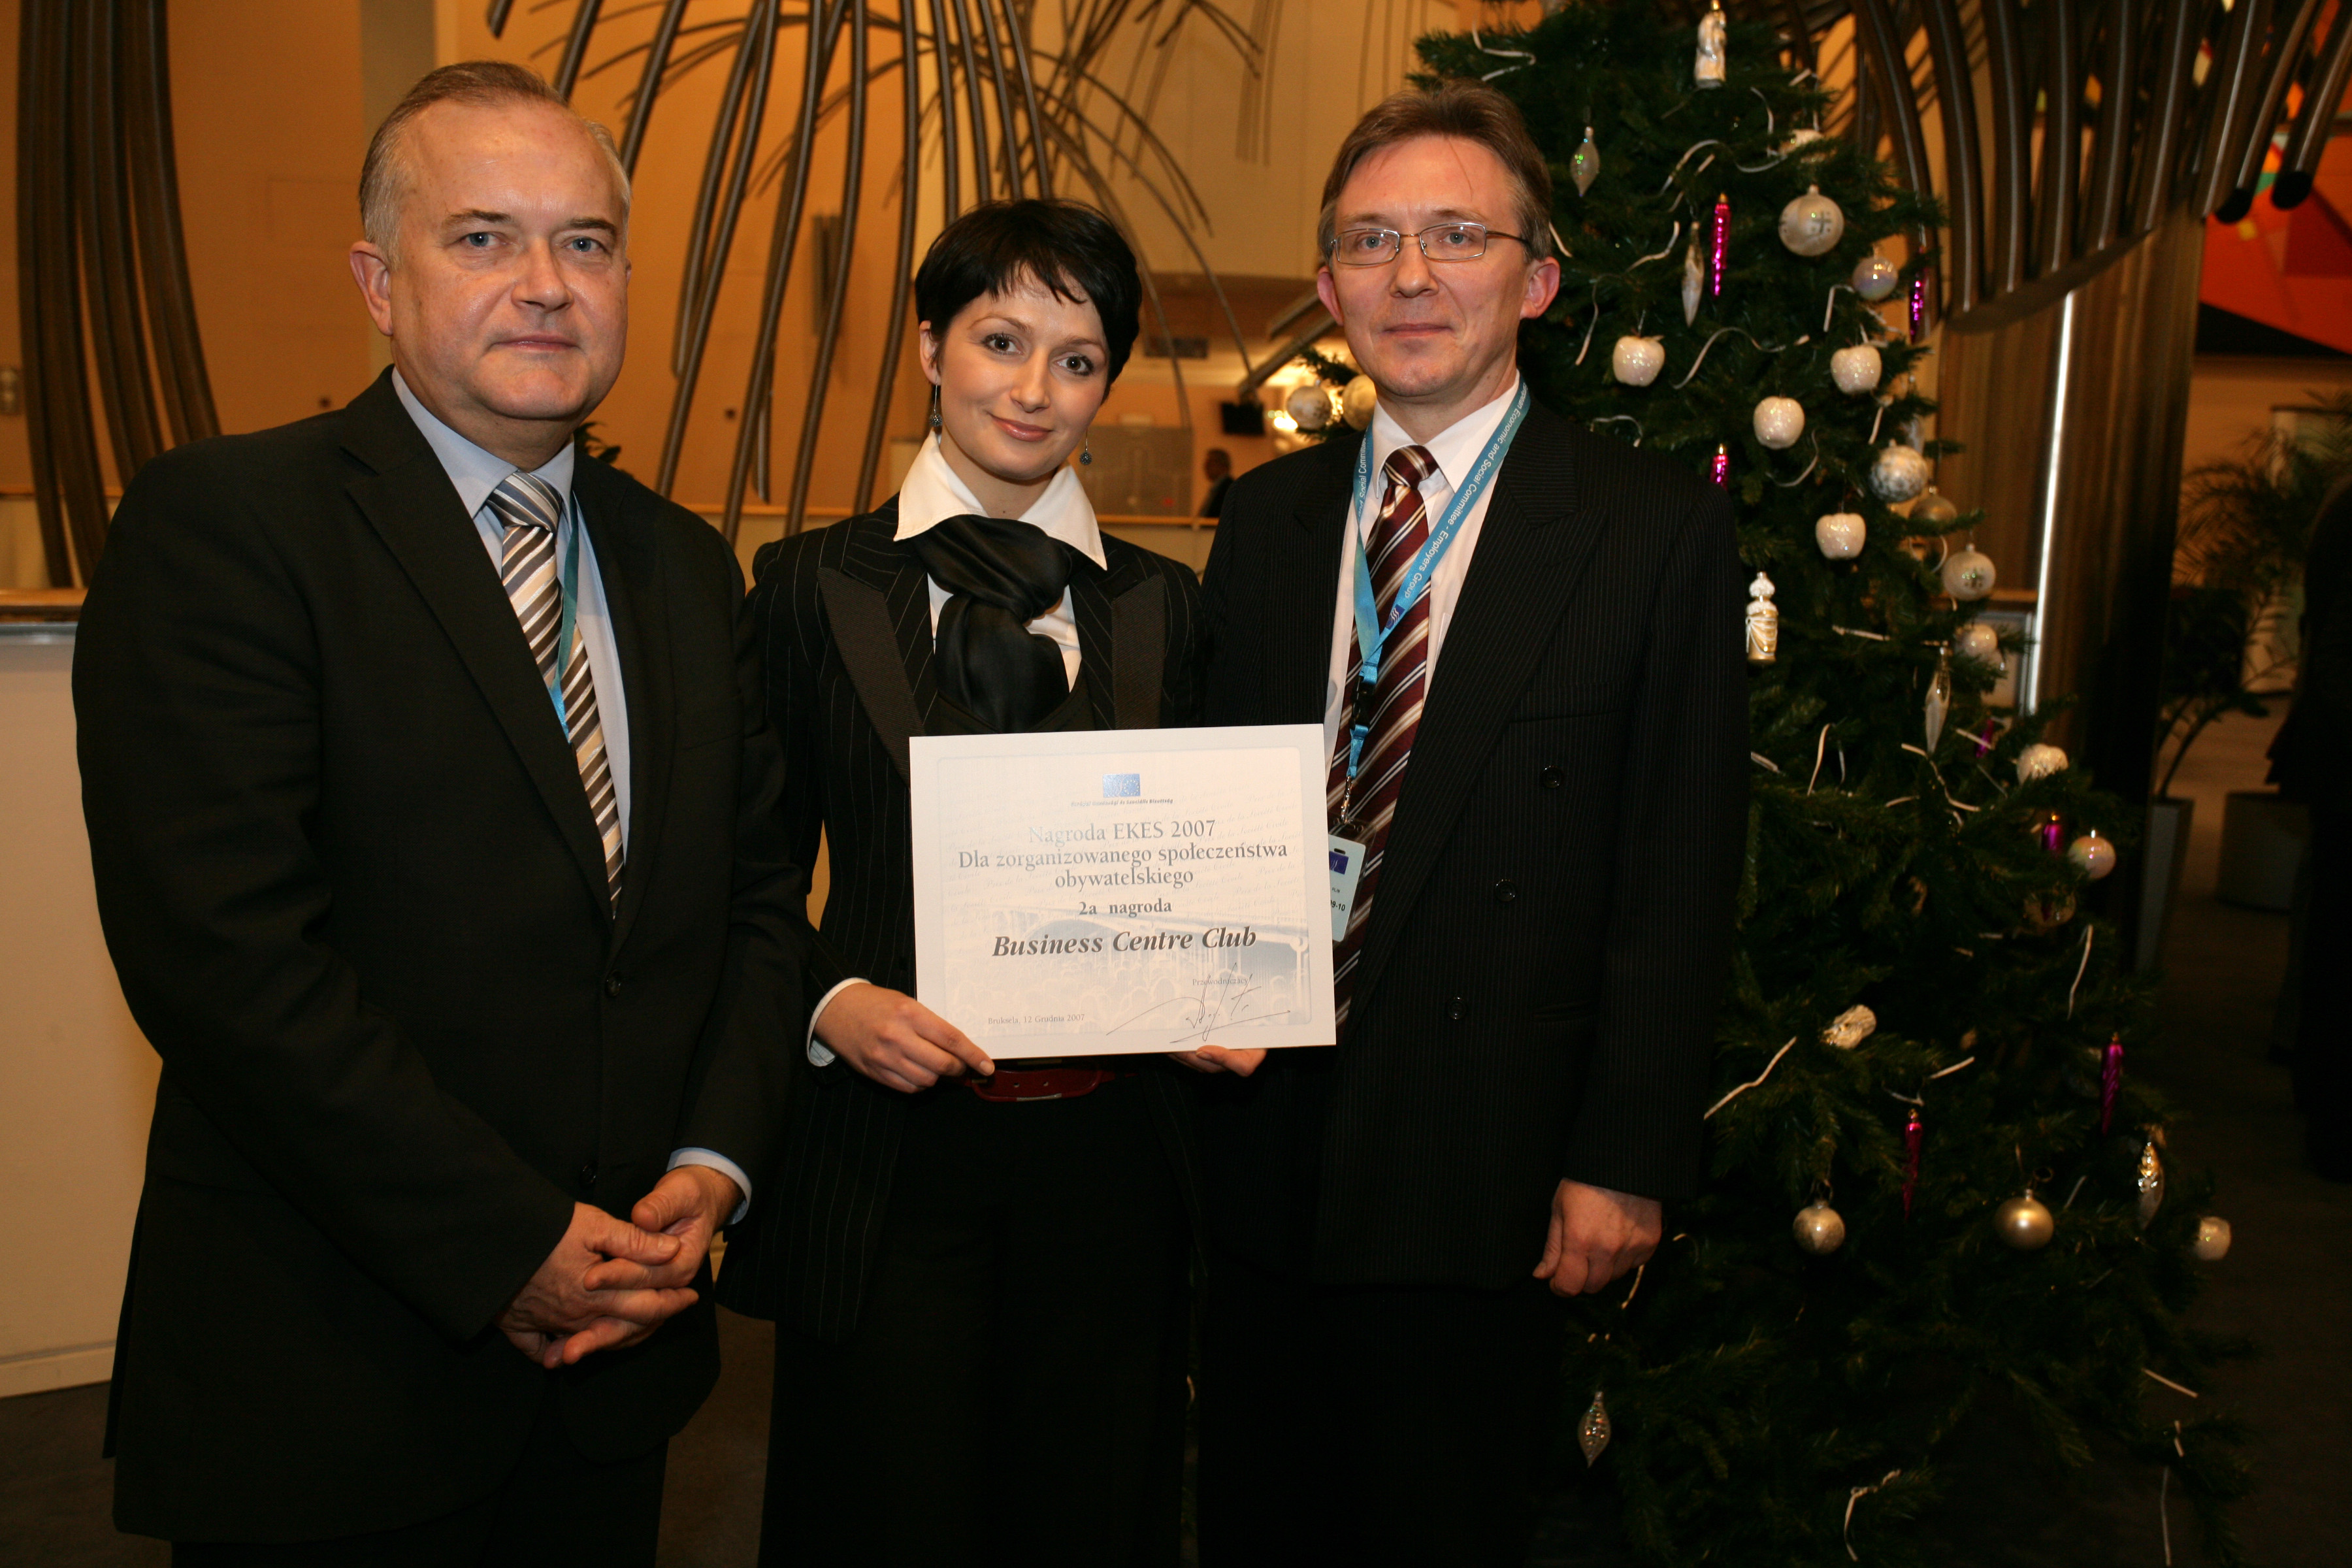 Anna Potocka, Vice President of the Business Centre Club, Poland, with the Polish EESC members Jaroslaw Mulewicz (left) and Krzysztof Ostrowski (right)